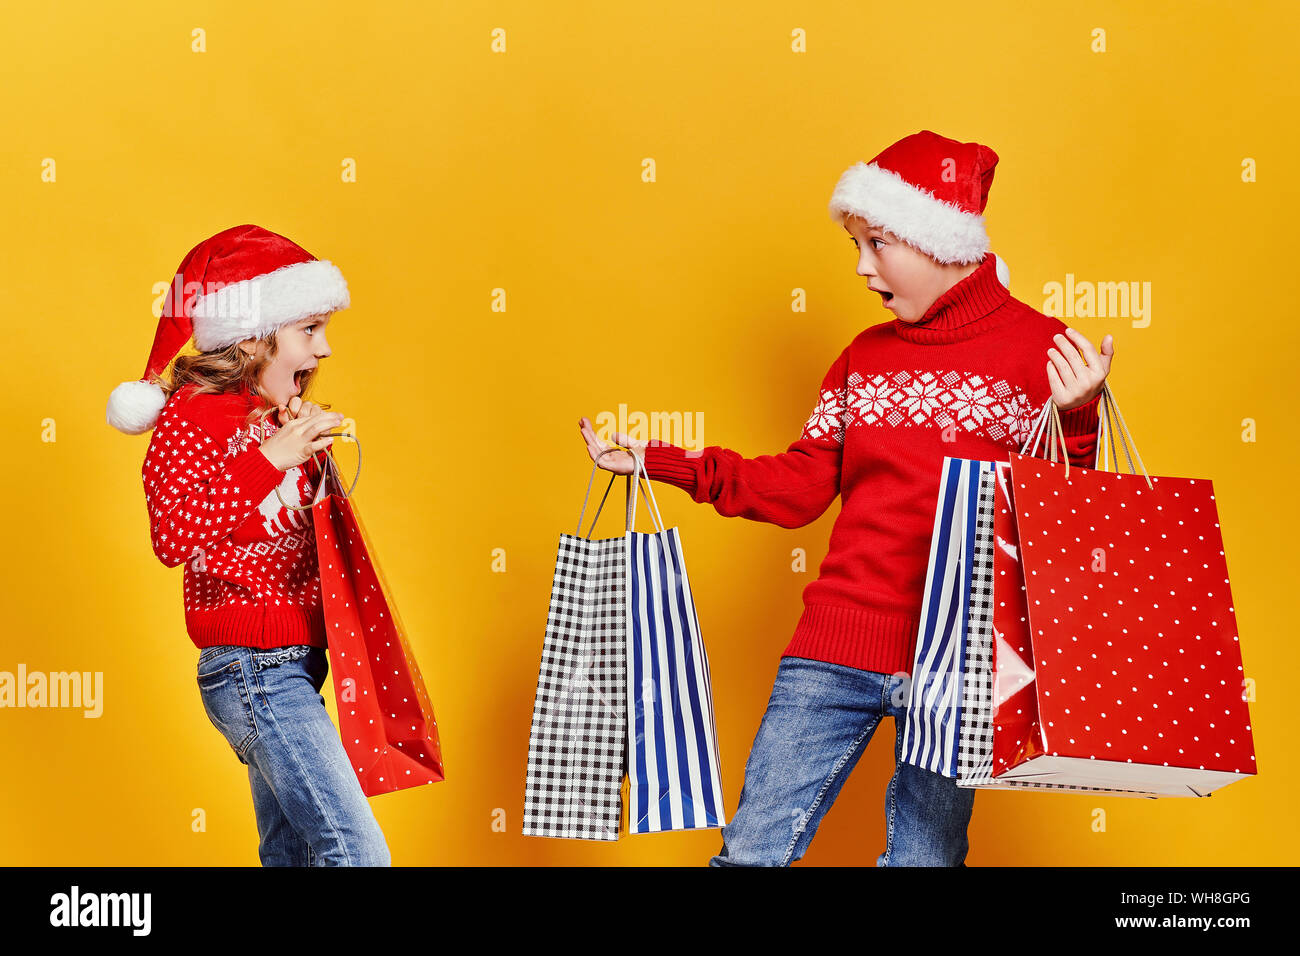 Cute Christmas Gifts For Girlfriend.Cute Little Girl In Santa Hat Hanging Shopping Bag With